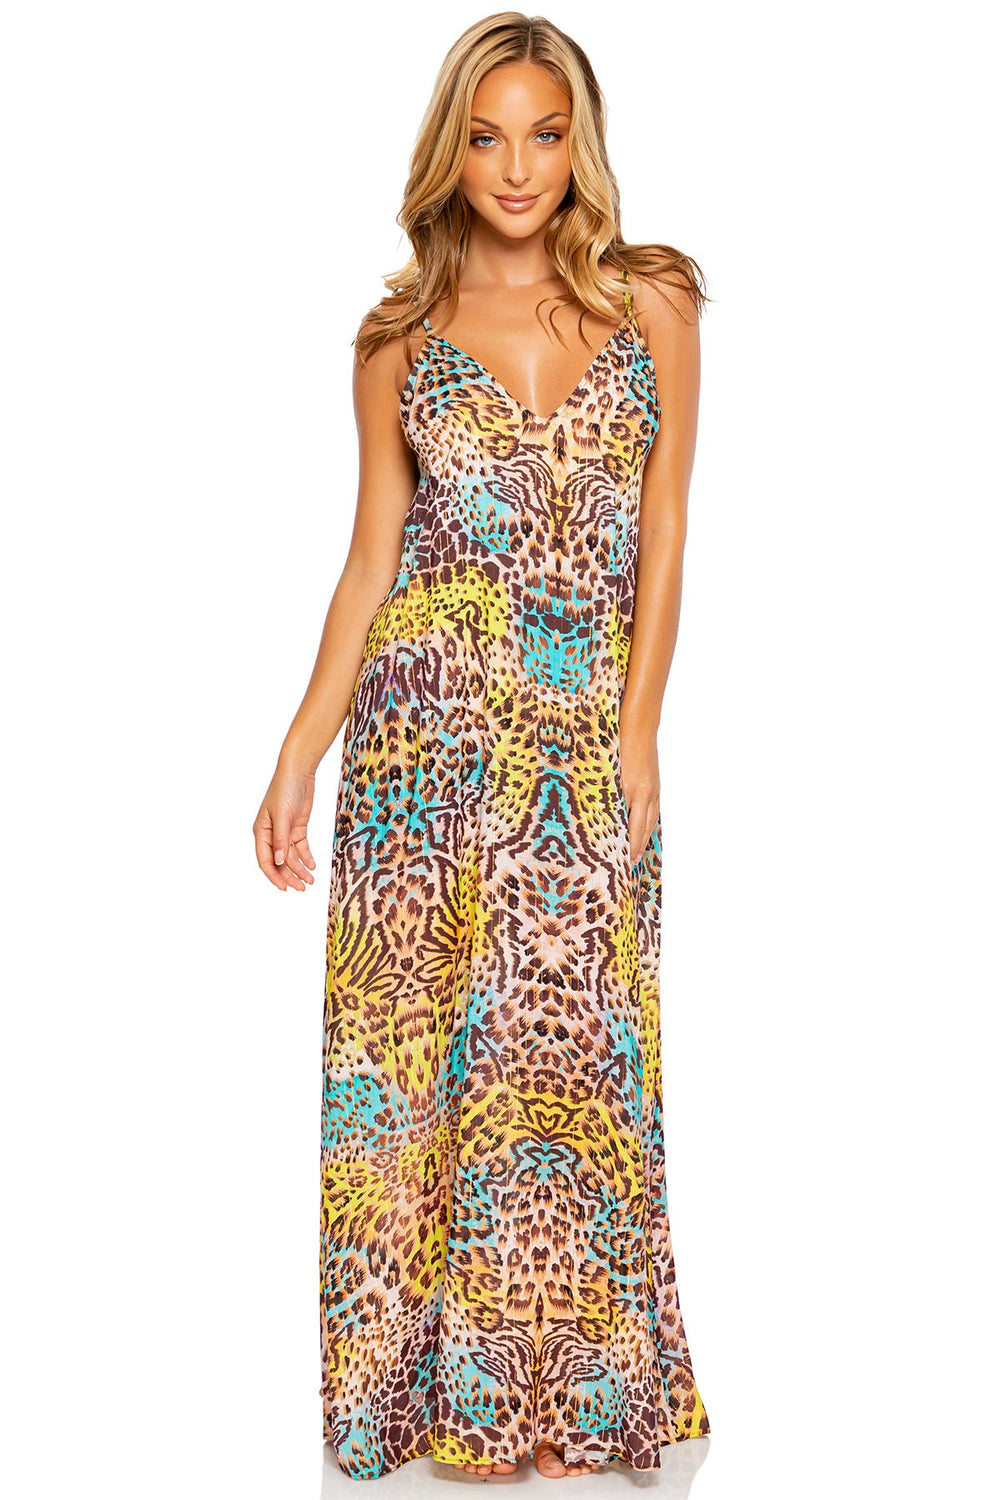 DIOSA SALVAJE - Spaghetti Strap Long Dress • Multicolor